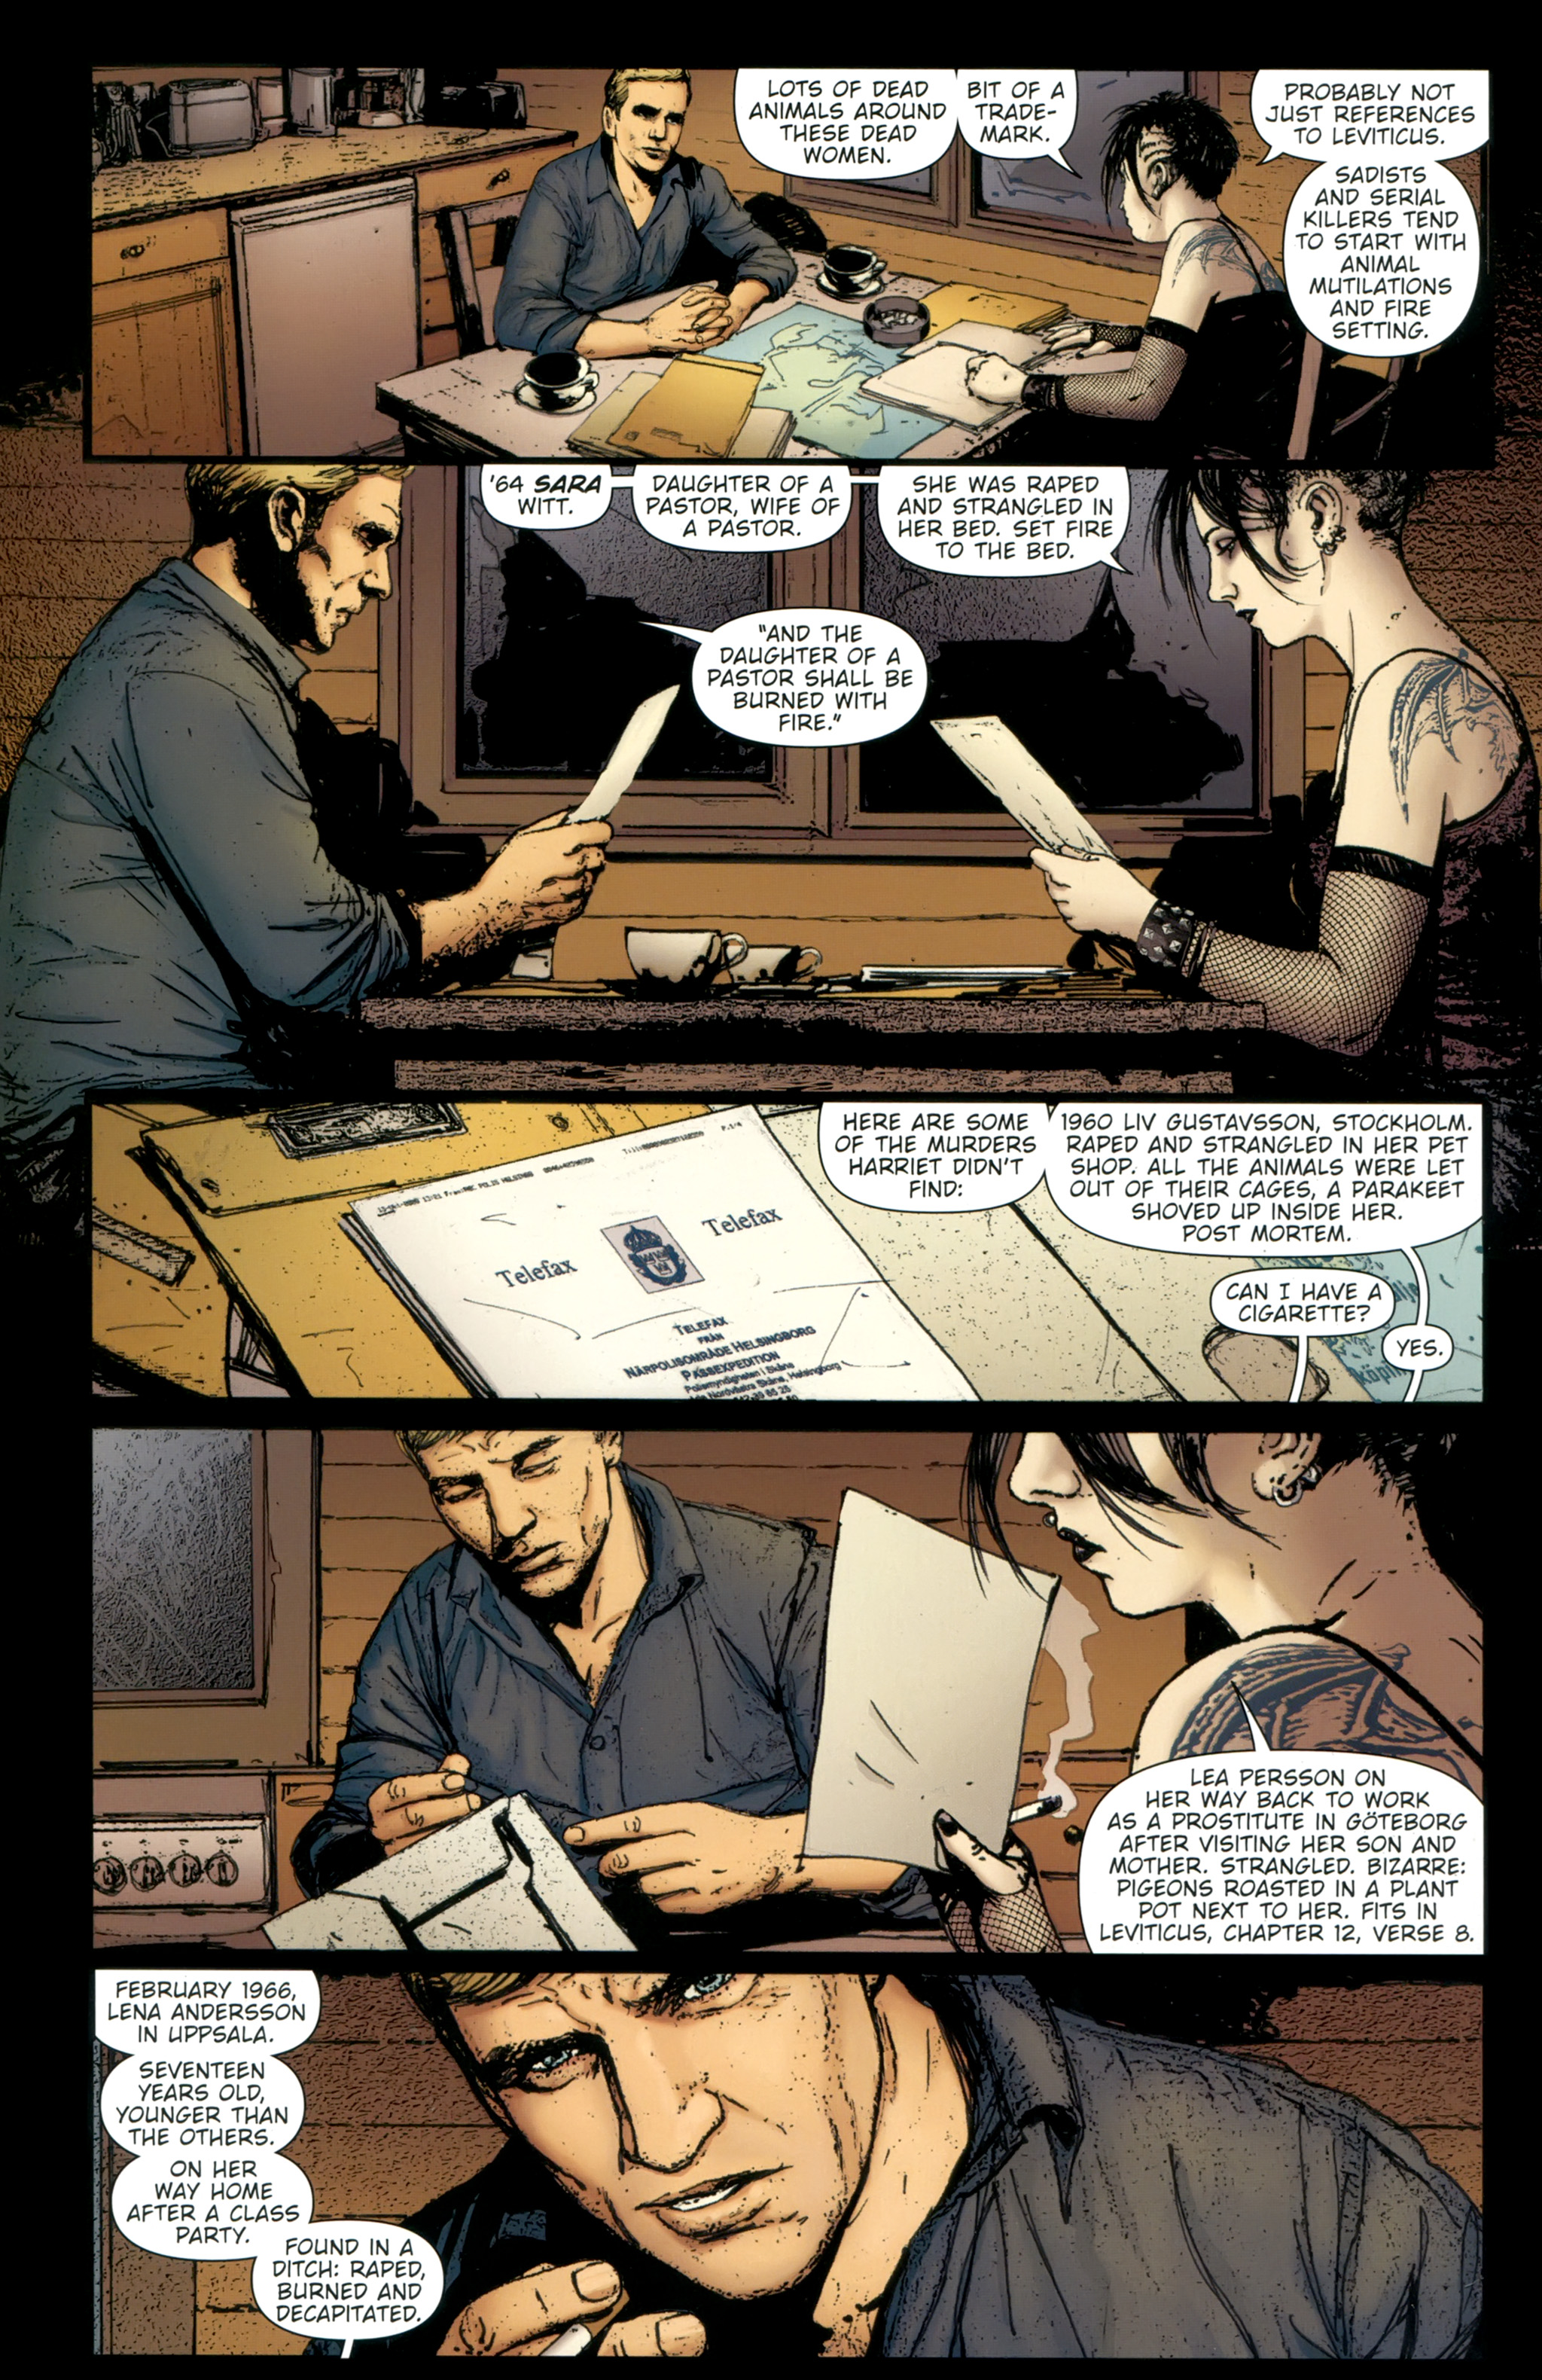 Read online The Girl With the Dragon Tattoo comic -  Issue # TPB 2 - 66